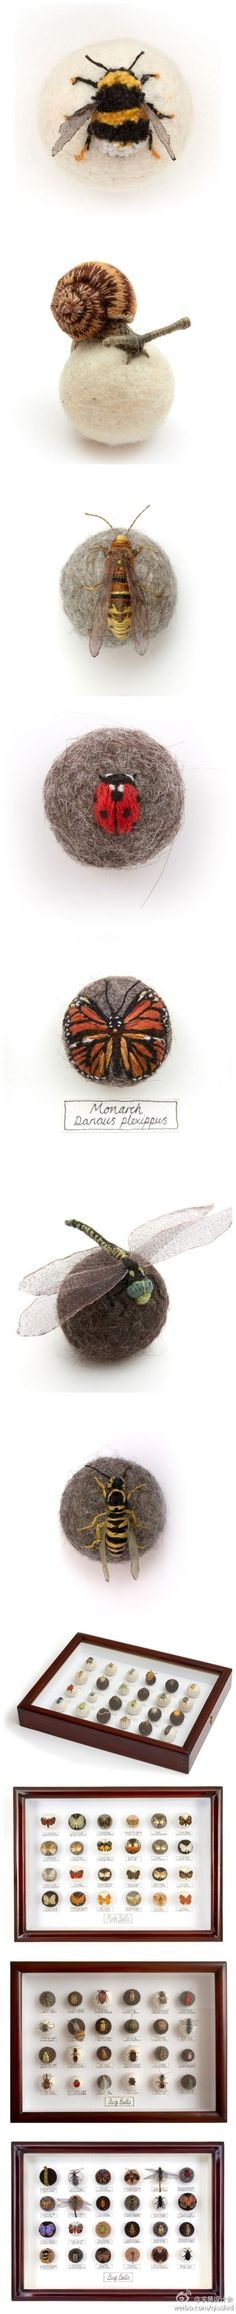 Needle felted insects! I adore this collection!